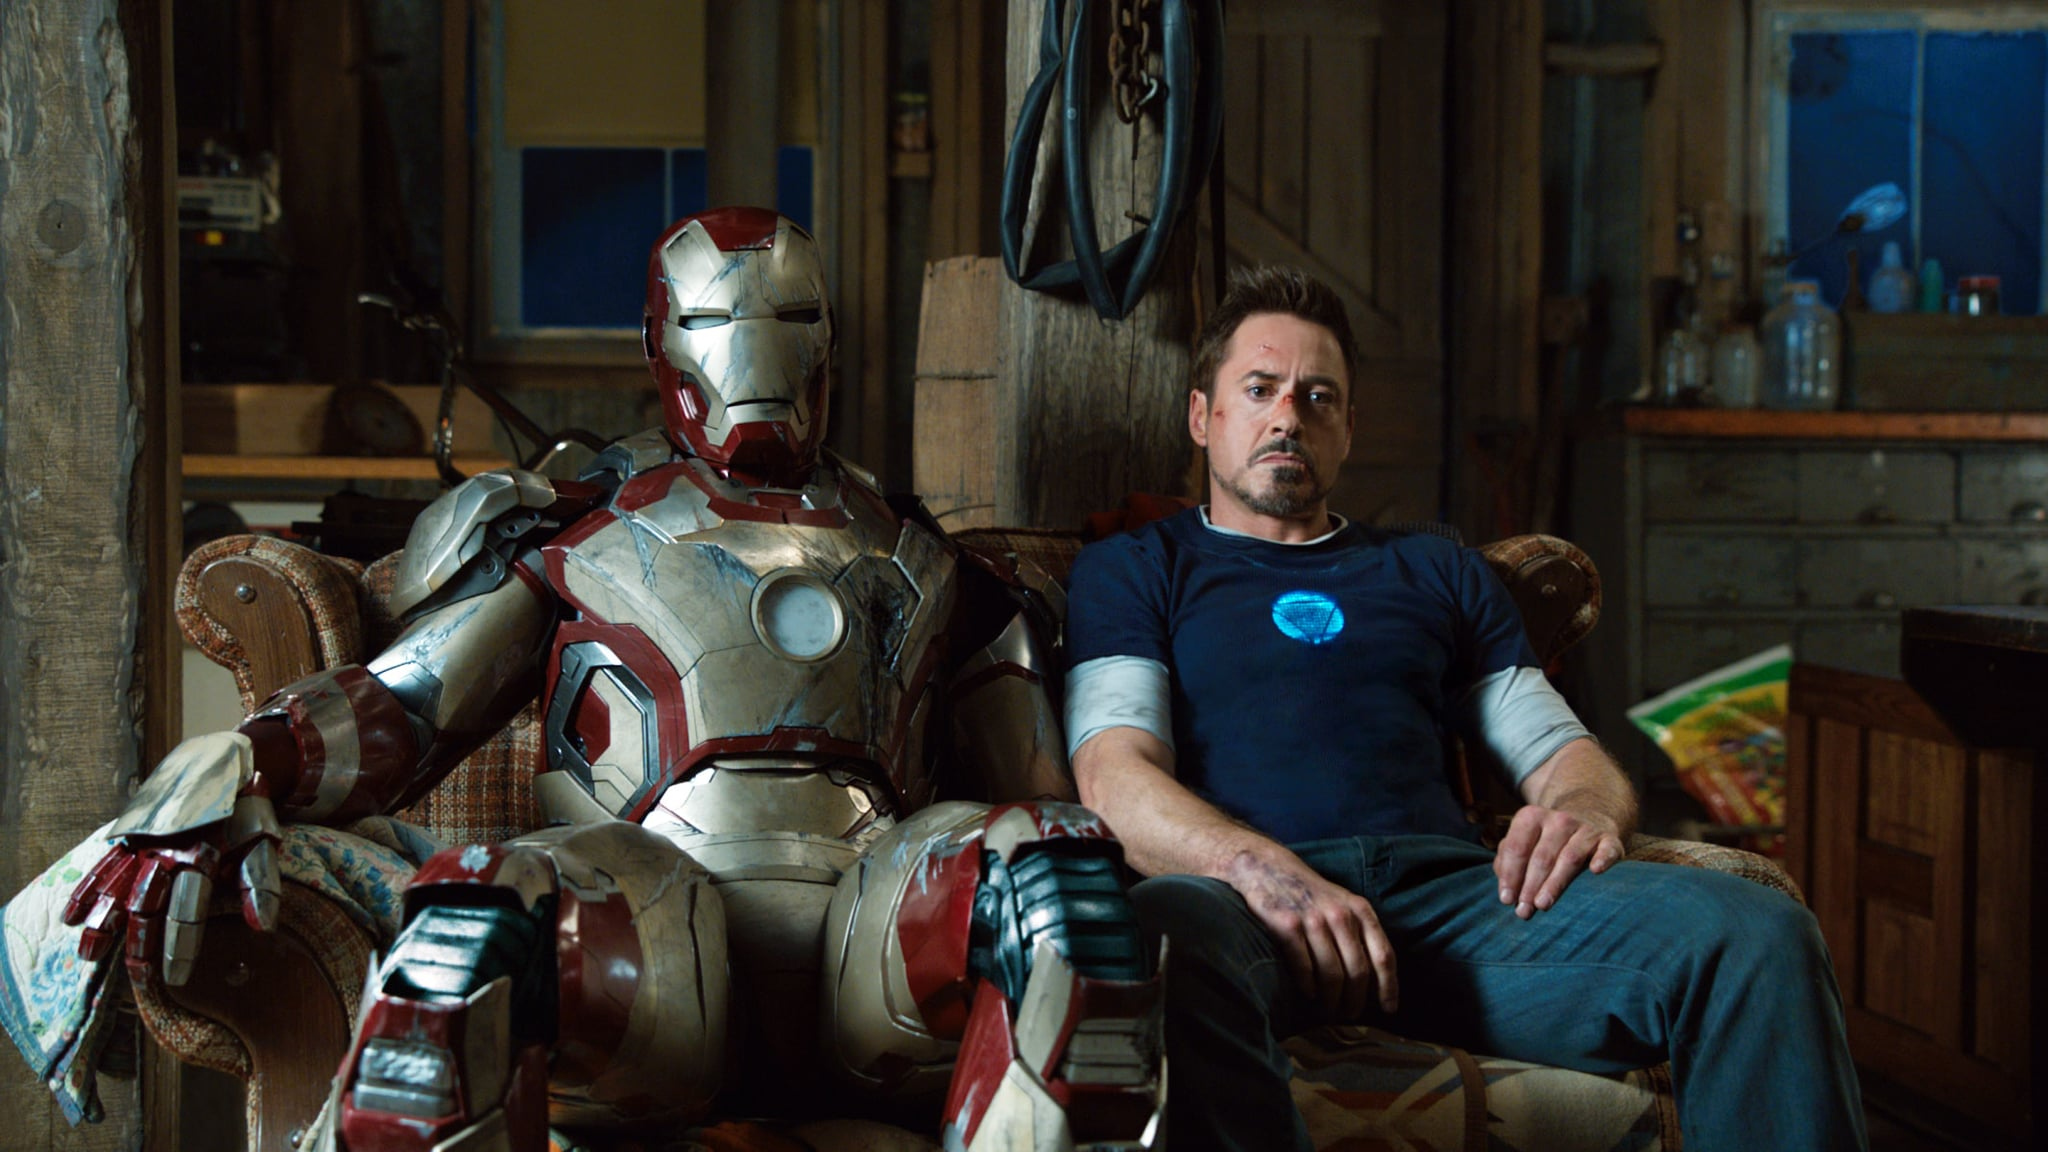 IRON MAN 3, Robert Downey Jr. as Iron Man, 2013. ph: Zade Rosenthal/Walt Disney Pictures/courtesy Everett Collection